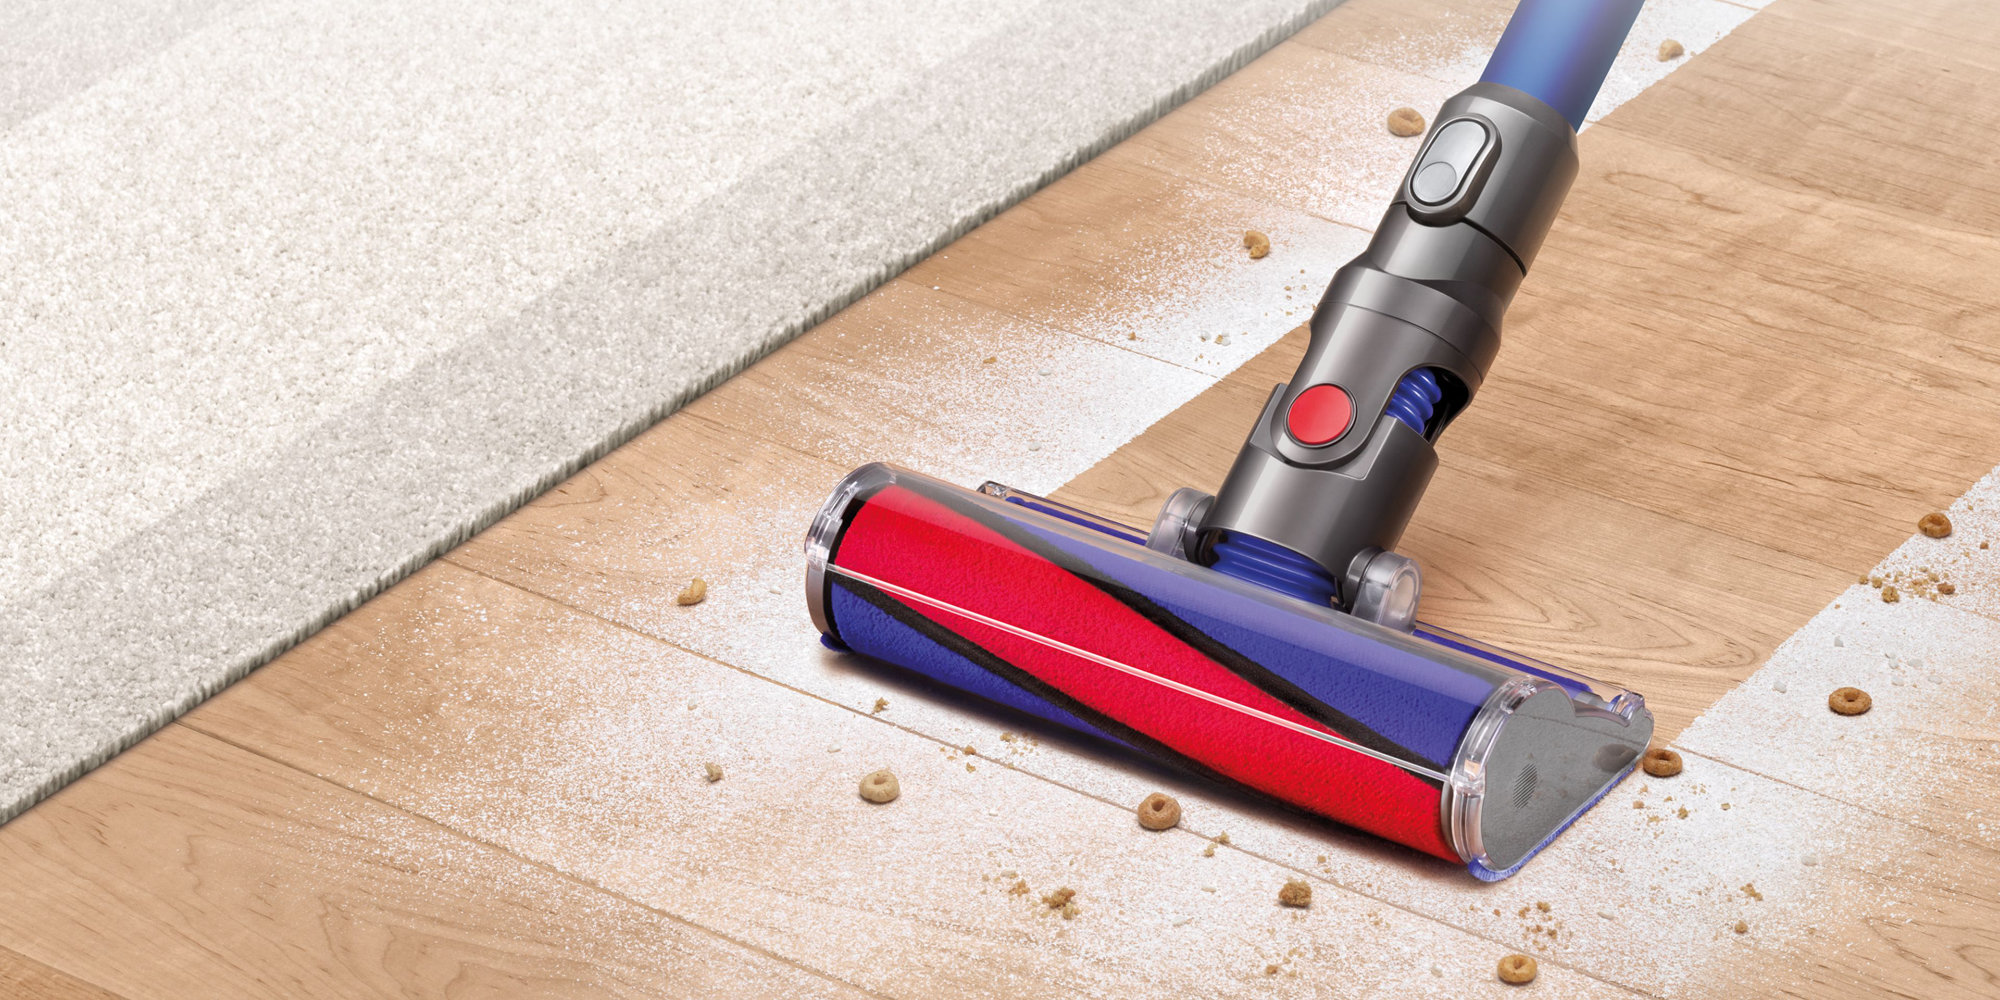 Clean messes w/ Dyson's V6 Fluffy Vacuum + 3 Extra Tools for a new low of $160 ($300+ value)